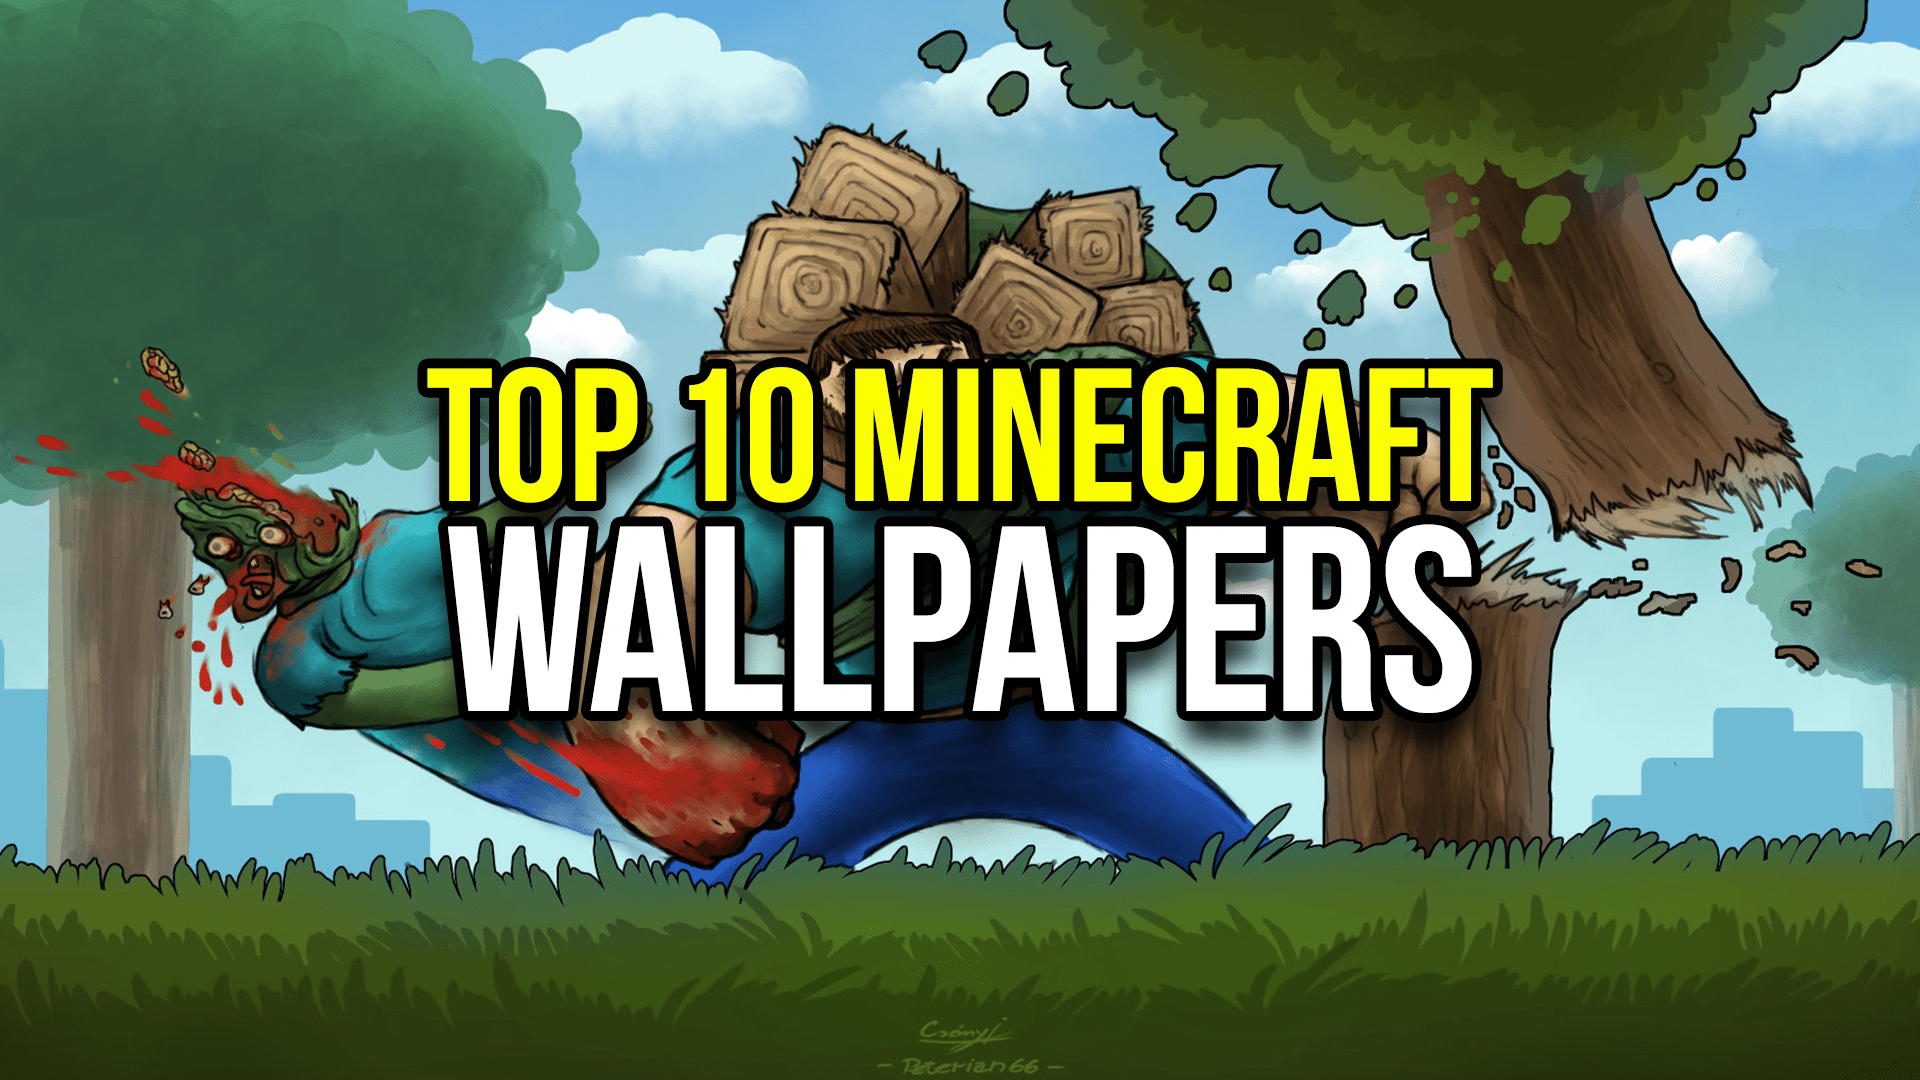 Cute 3d Cartoon Wallpapers Top 10 Minecraft Wallpapers Minecraftrocket